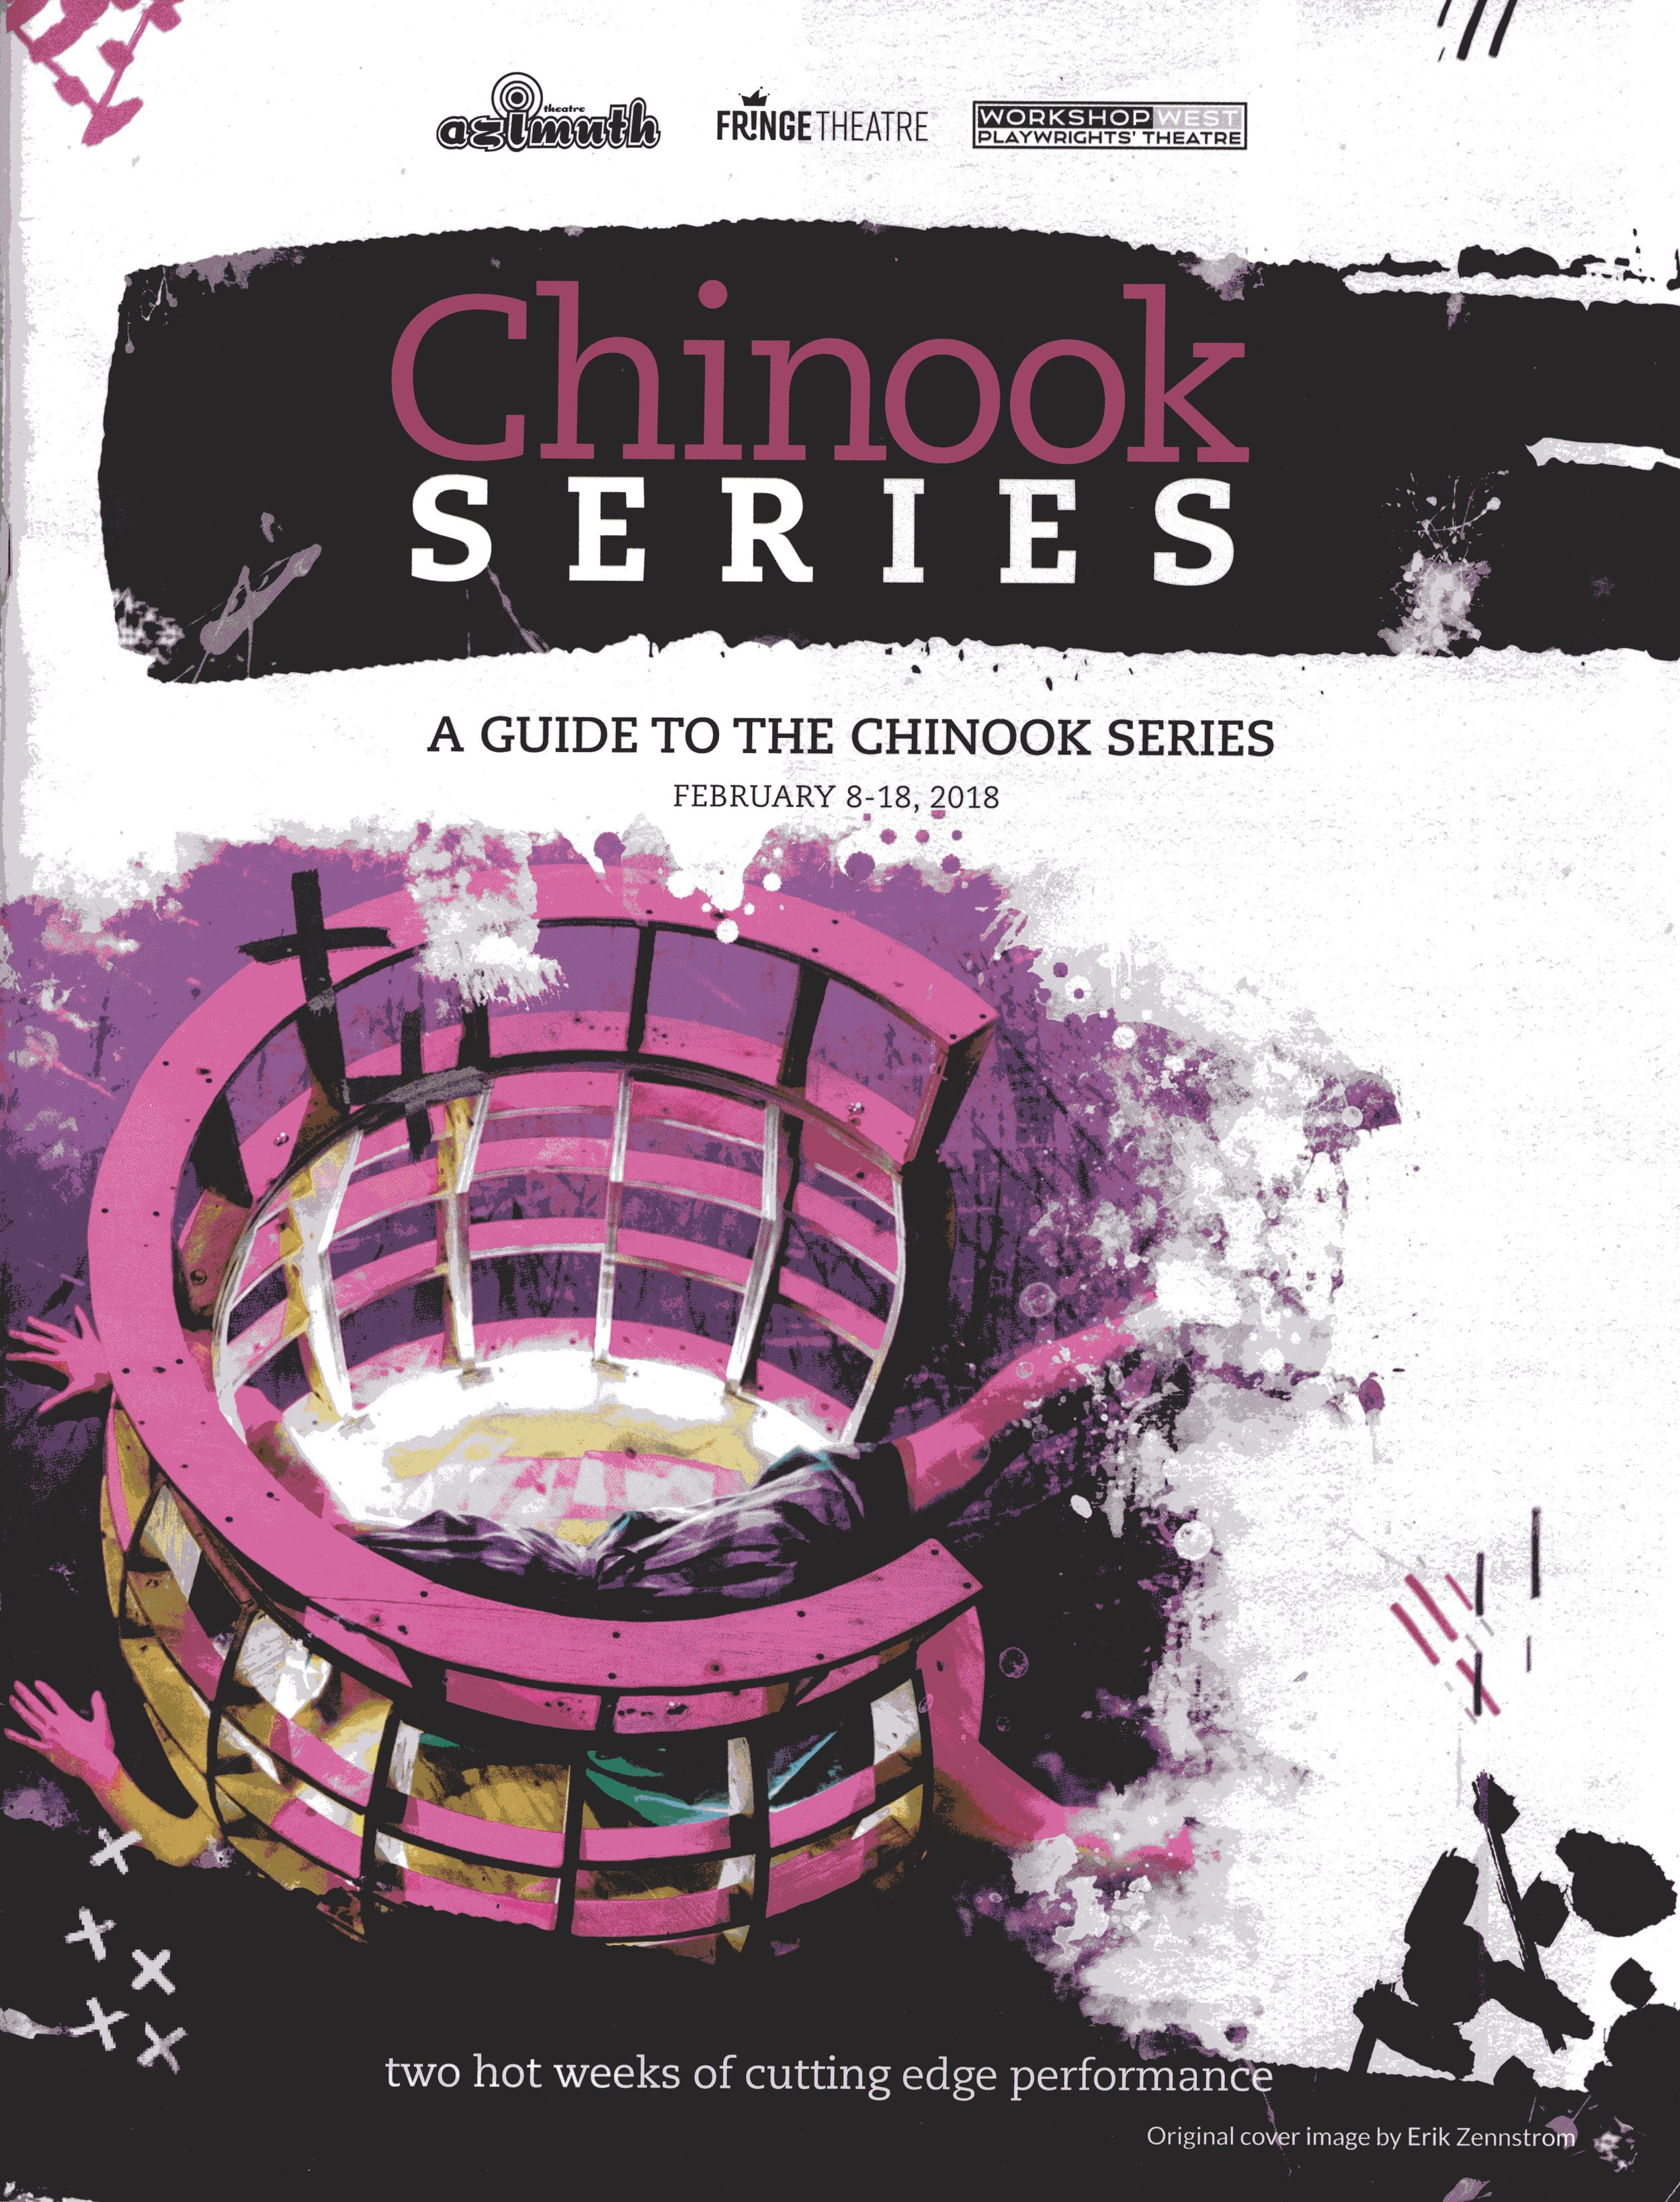 Chinook Series (2018) Program Book Cover.jpg